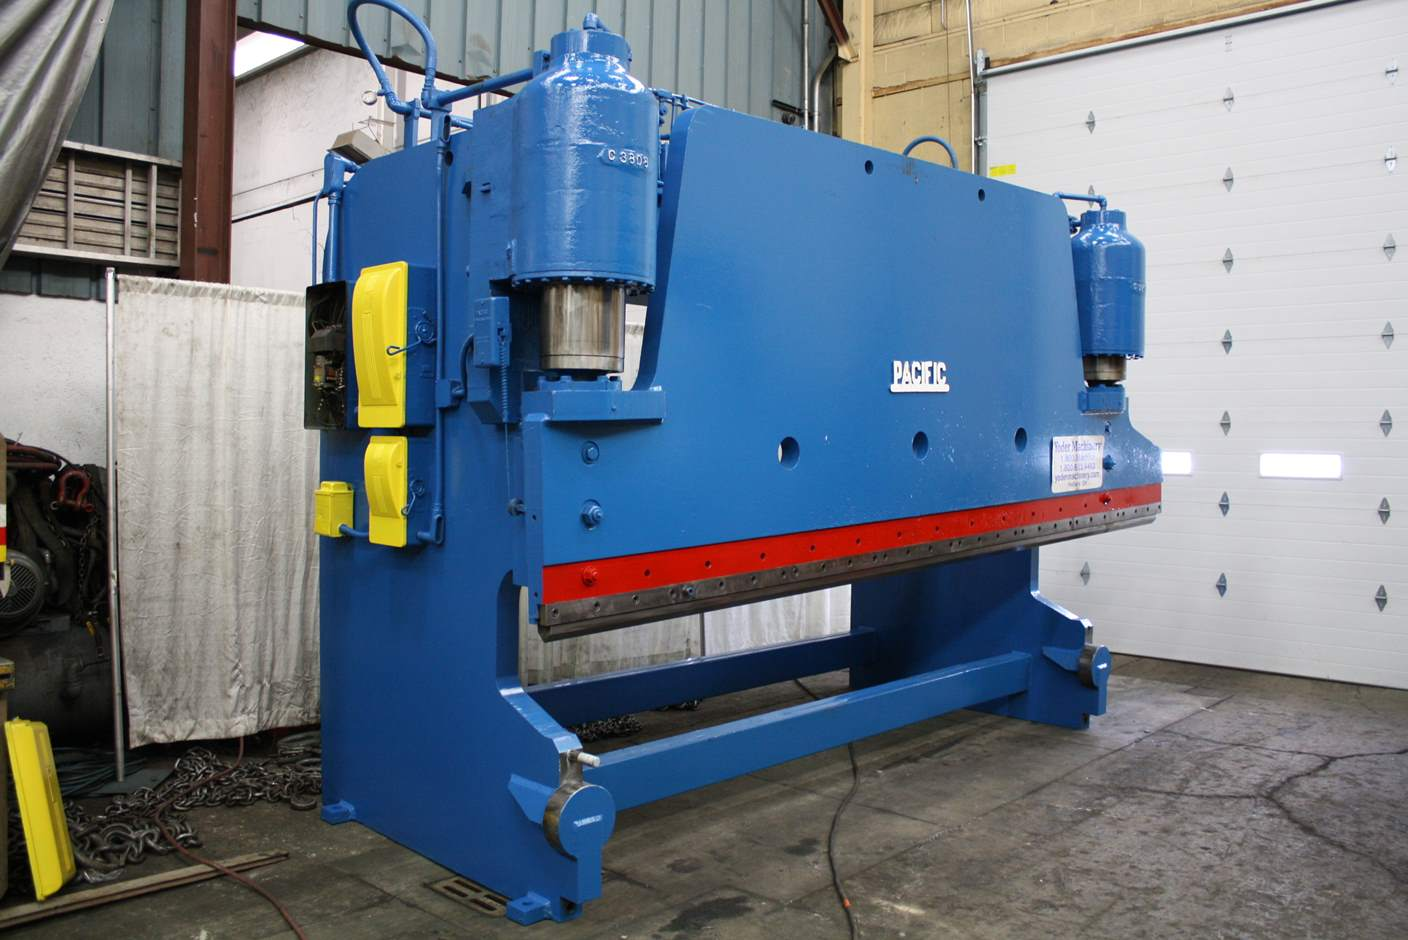 Used Press Brakes For Sale - 400 TON X 16 PACIFIC HYDRAULIC